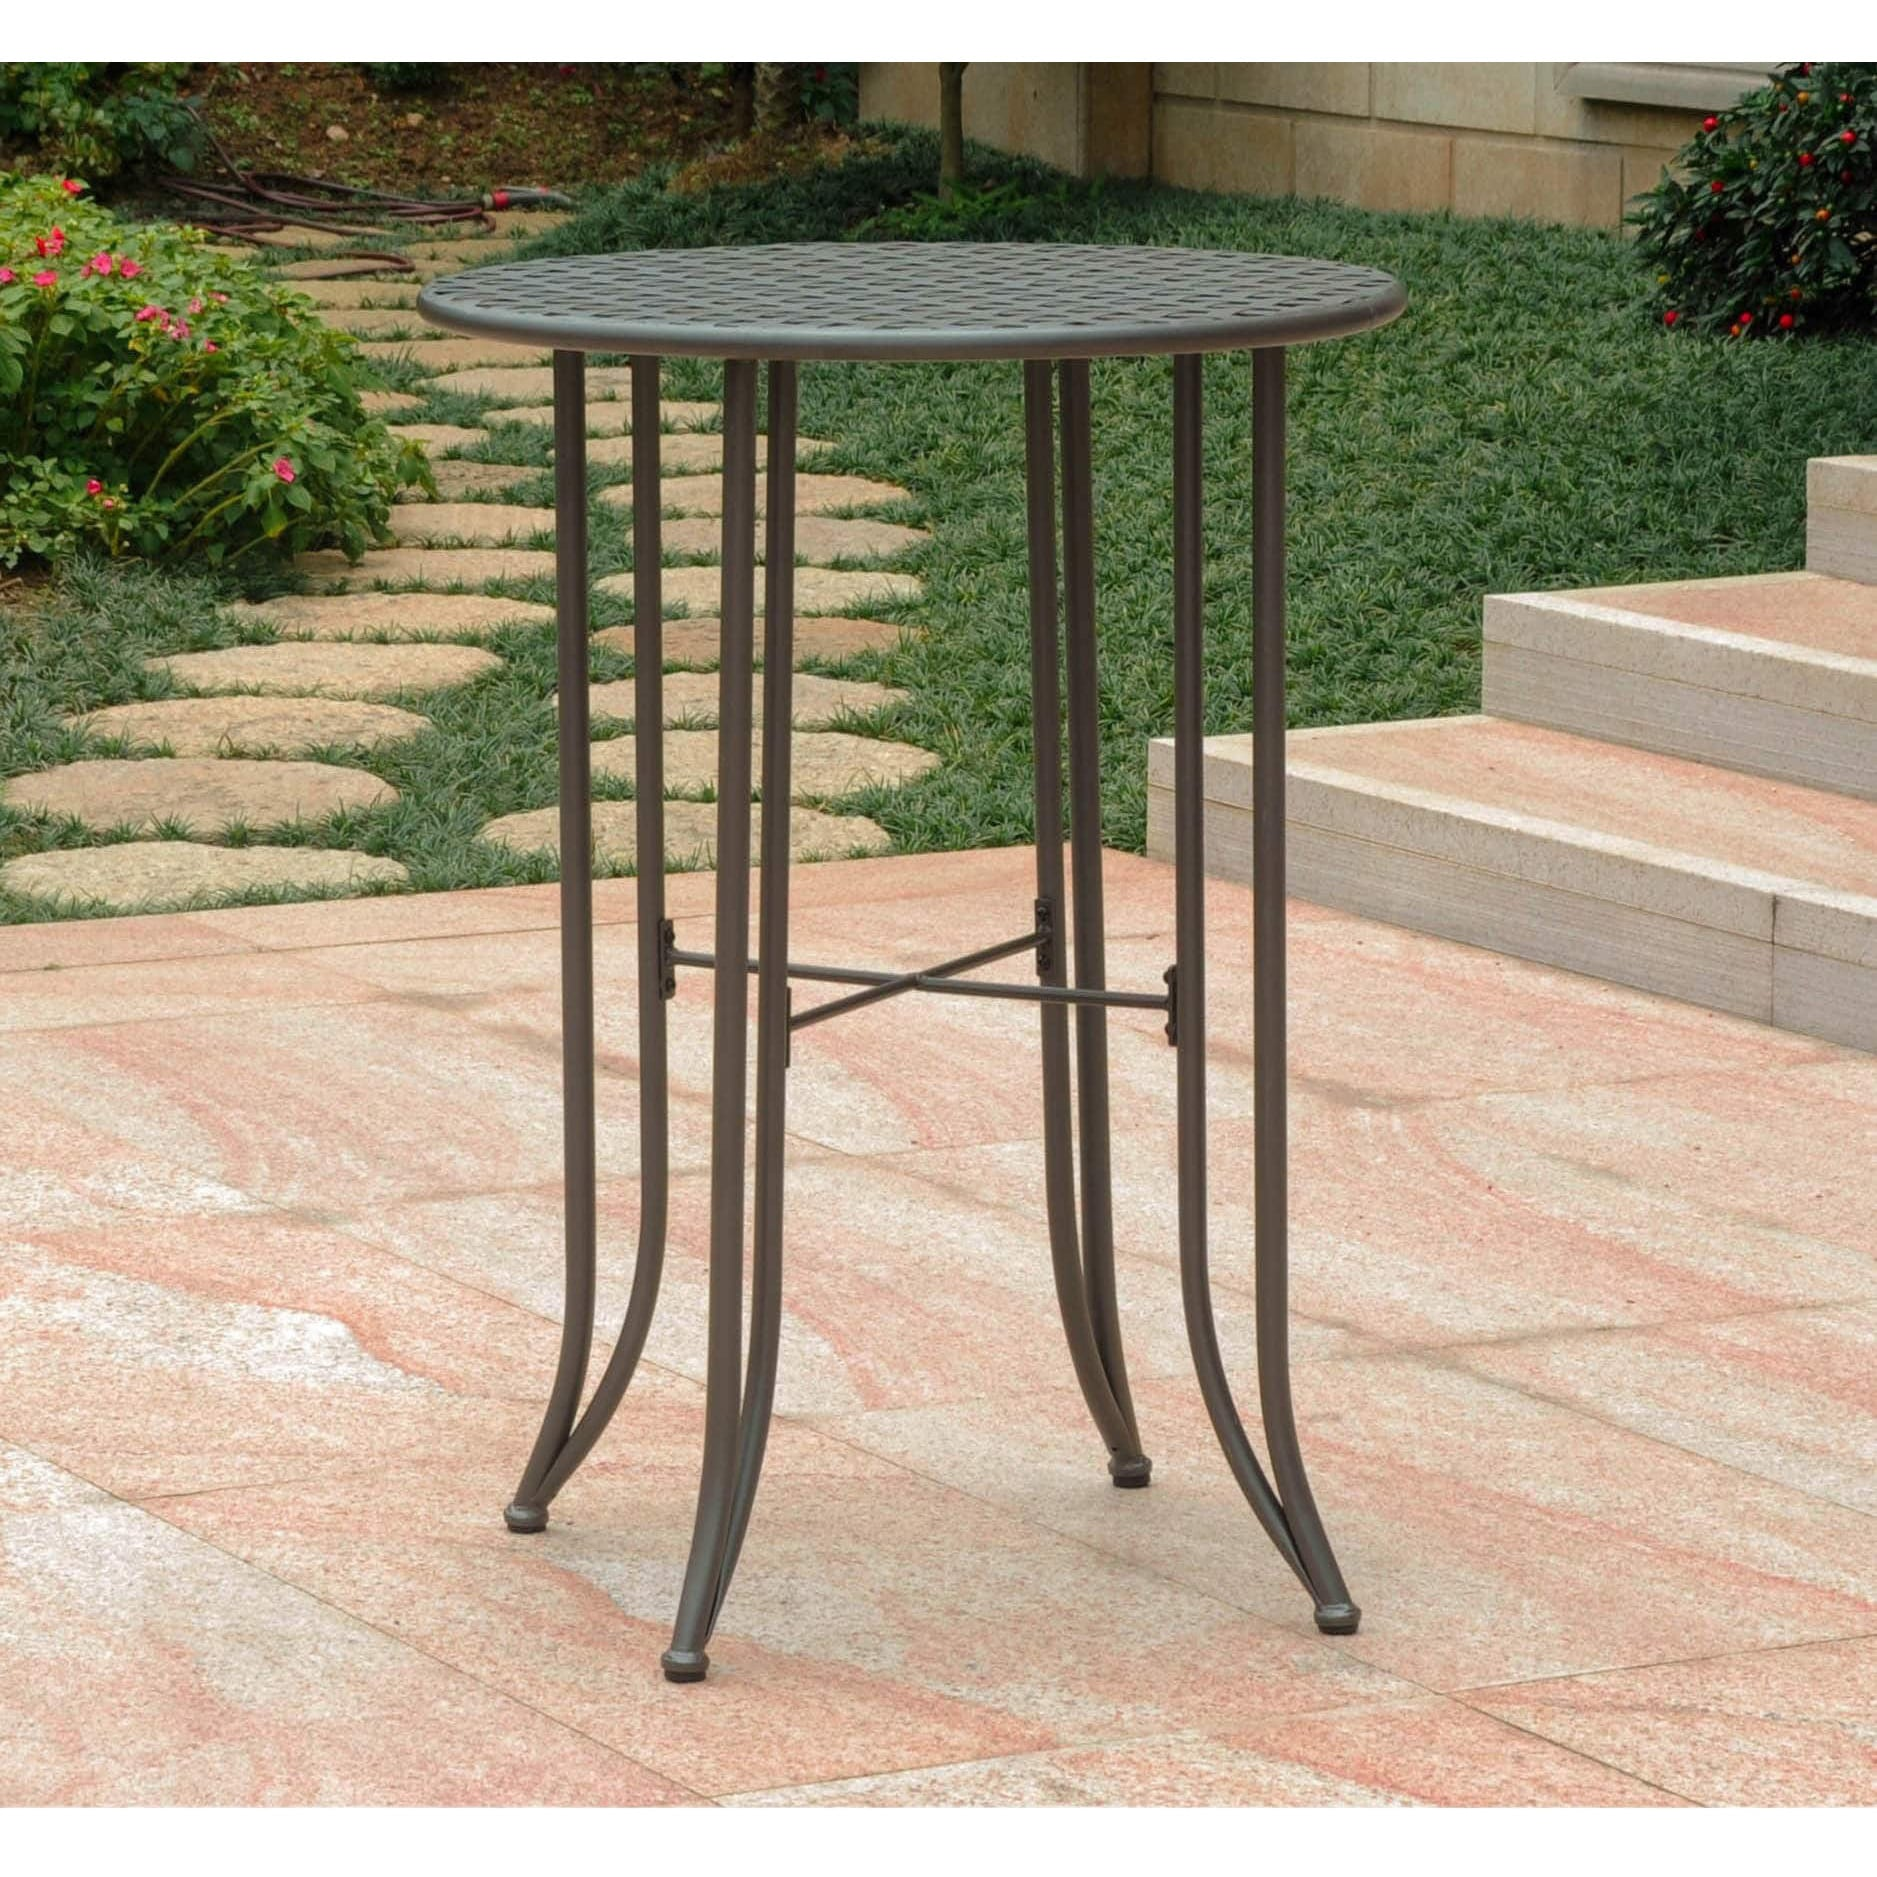 outdoor bar height table Shop International Caravan Mandalay Outdoor Iron Bar height Table  outdoor bar height table